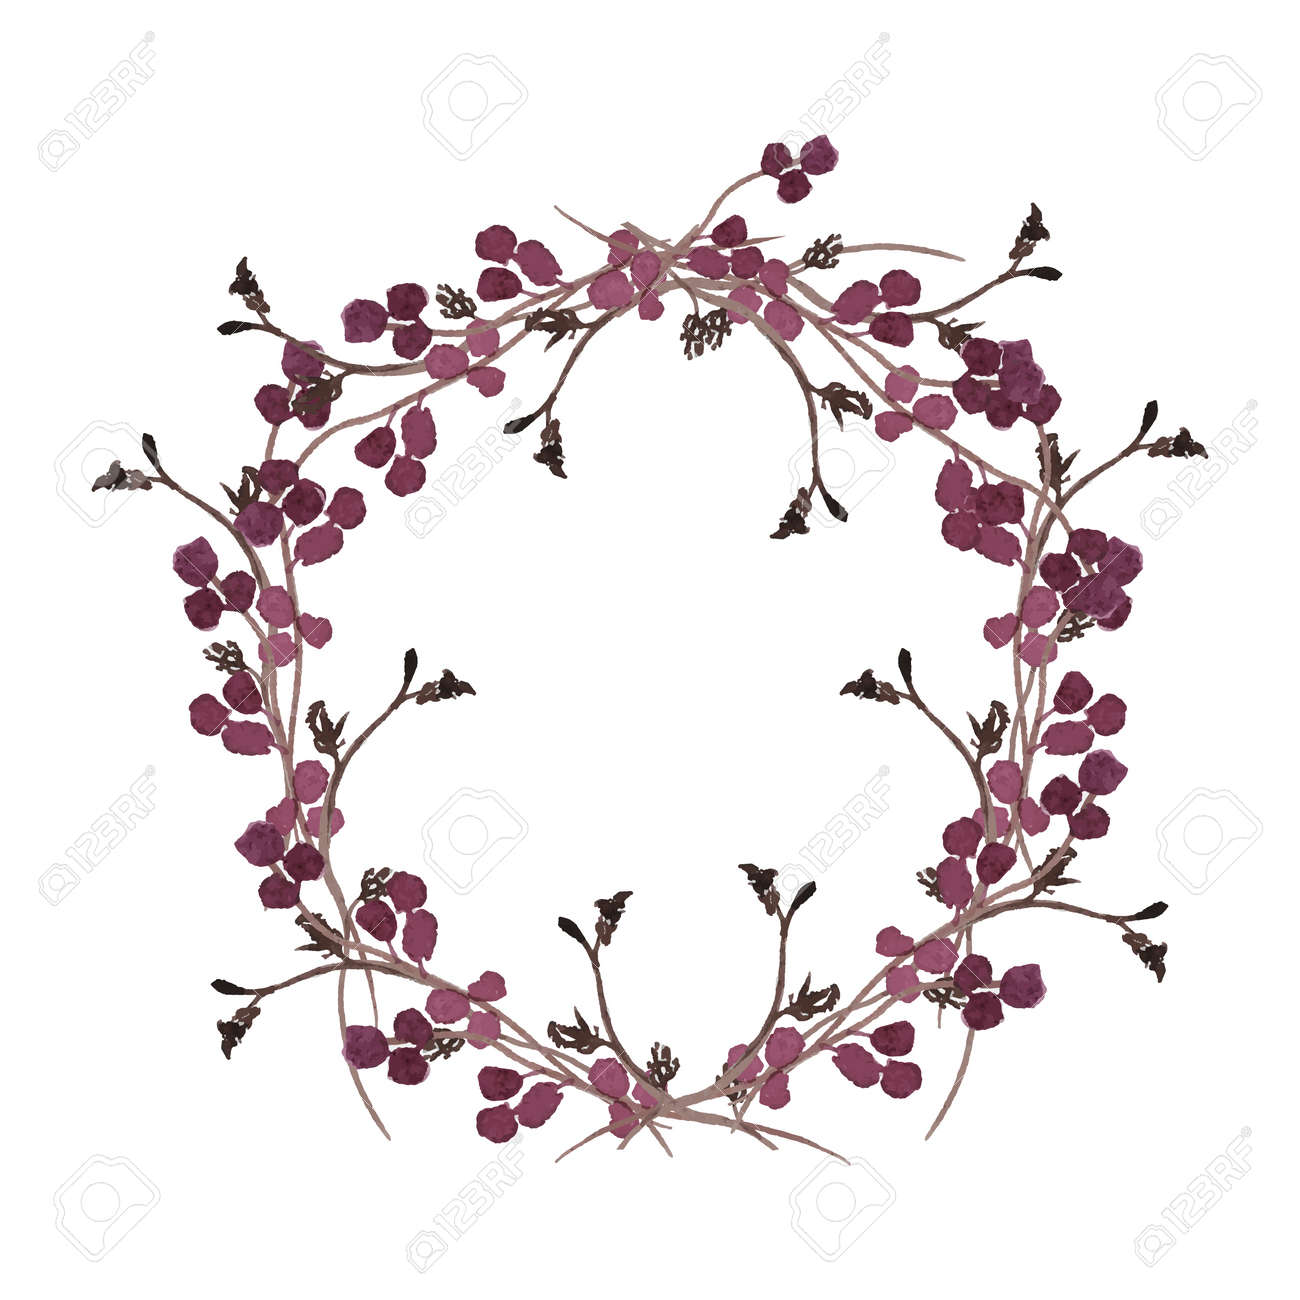 Floral wreath. Round borders made of hand drawn herbs and flowers. Herbal frame. Greenery autumn border isolated on white. Fall nature branch to ornate quote or logo. Wedding wreath invitation. - 159465265